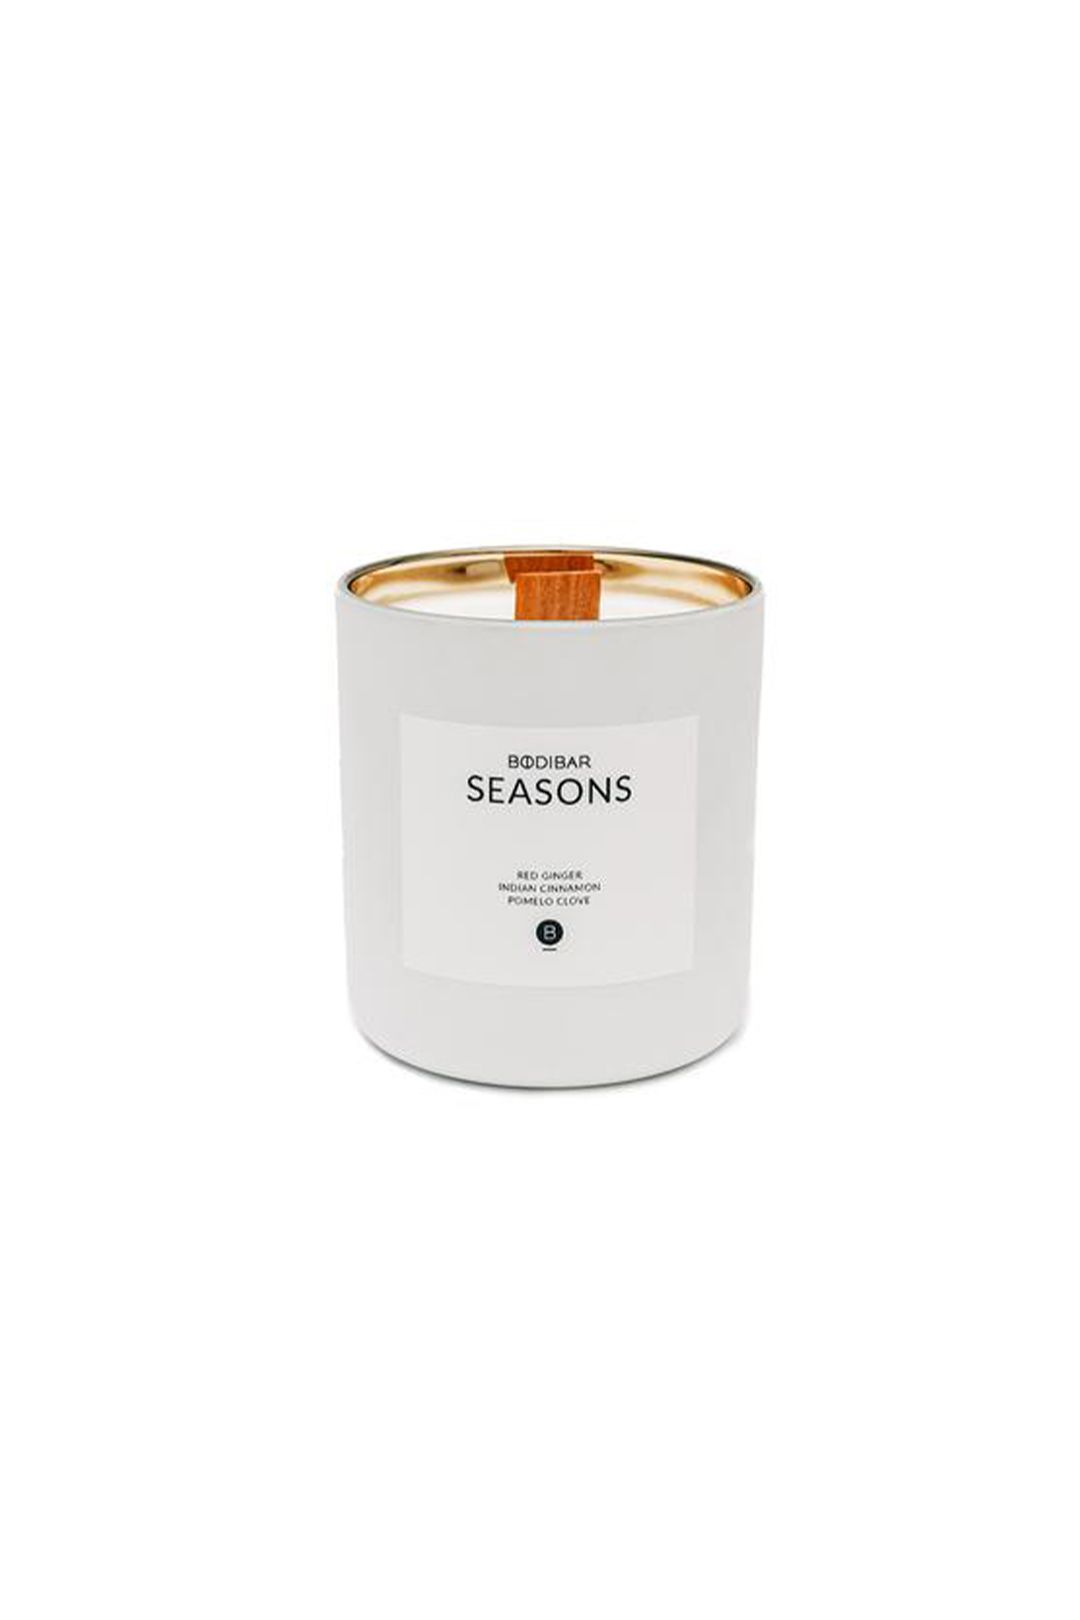 bodibar-seasons-signature-luxe-candles